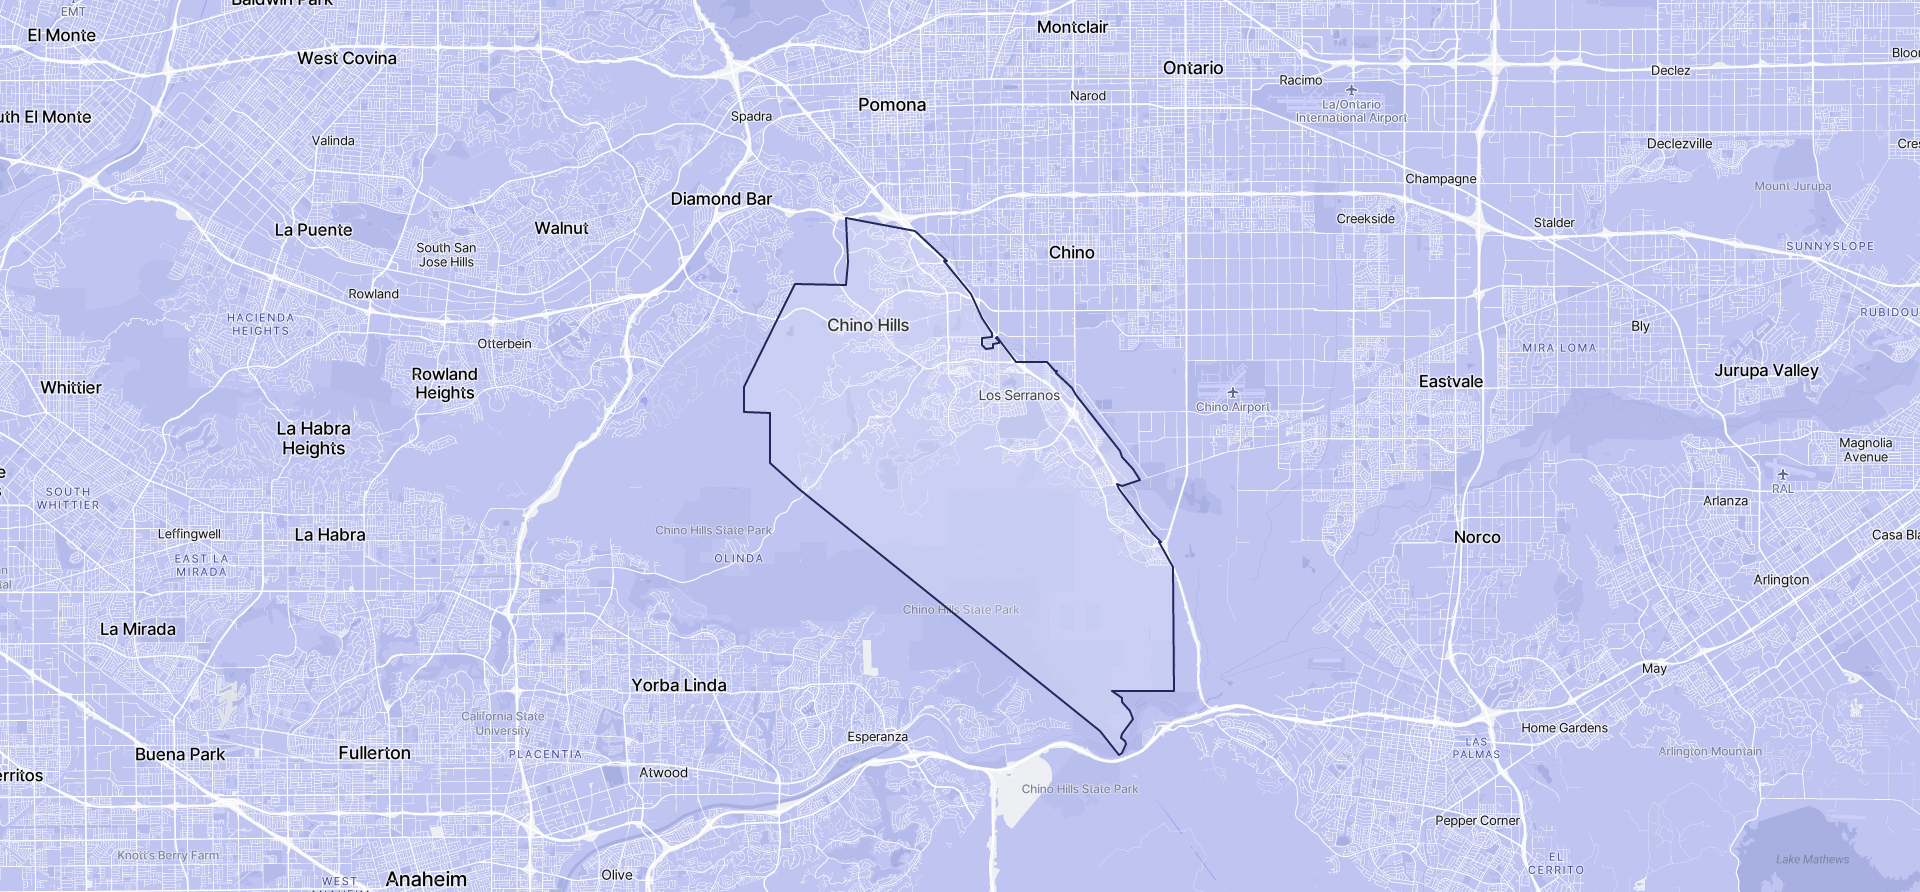 Image of Chino Hills boundaries on a map.